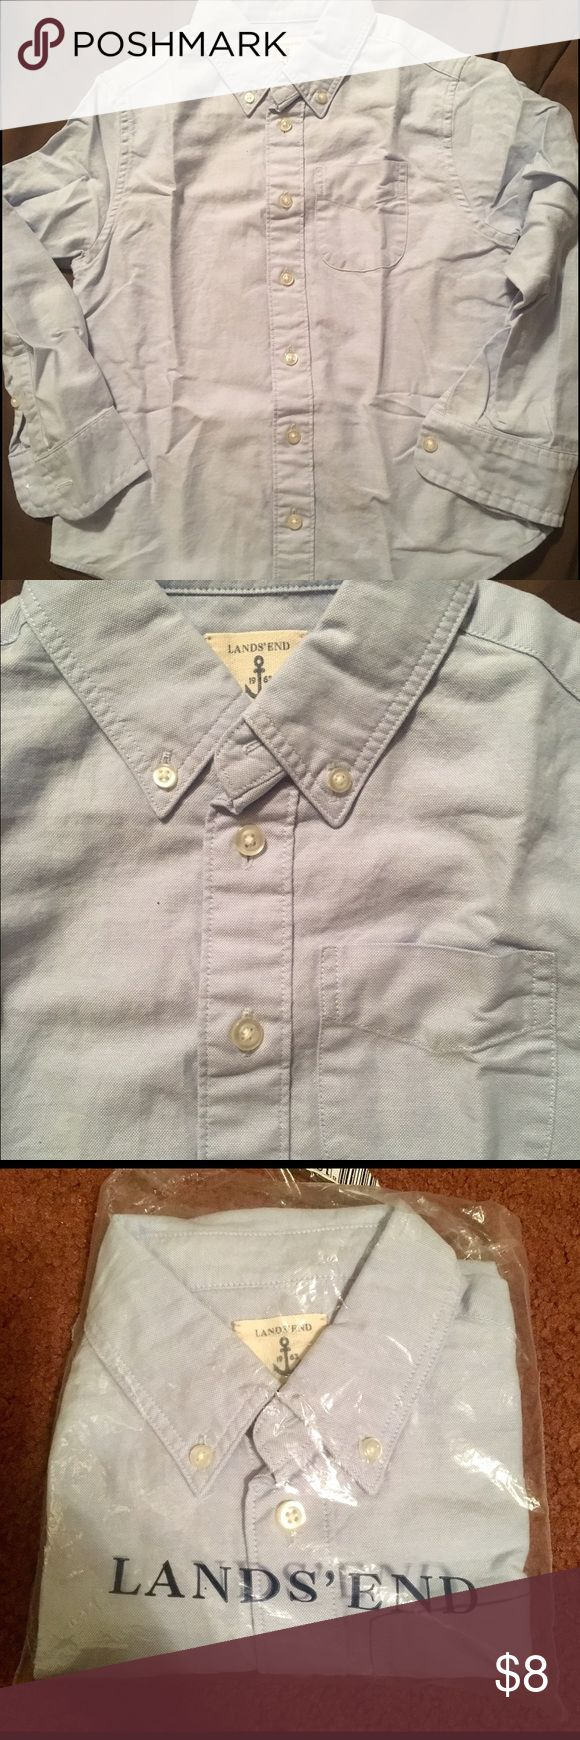 Lands Ends Kids Boys Blue Oxford Shirt M 5-6 New Lands Ends Kids Blue Oxford Button down Shirt. Pocket on the front. Size medium 5-6. Brand new. Lands' End Shirts & Tops Button Down Shirts